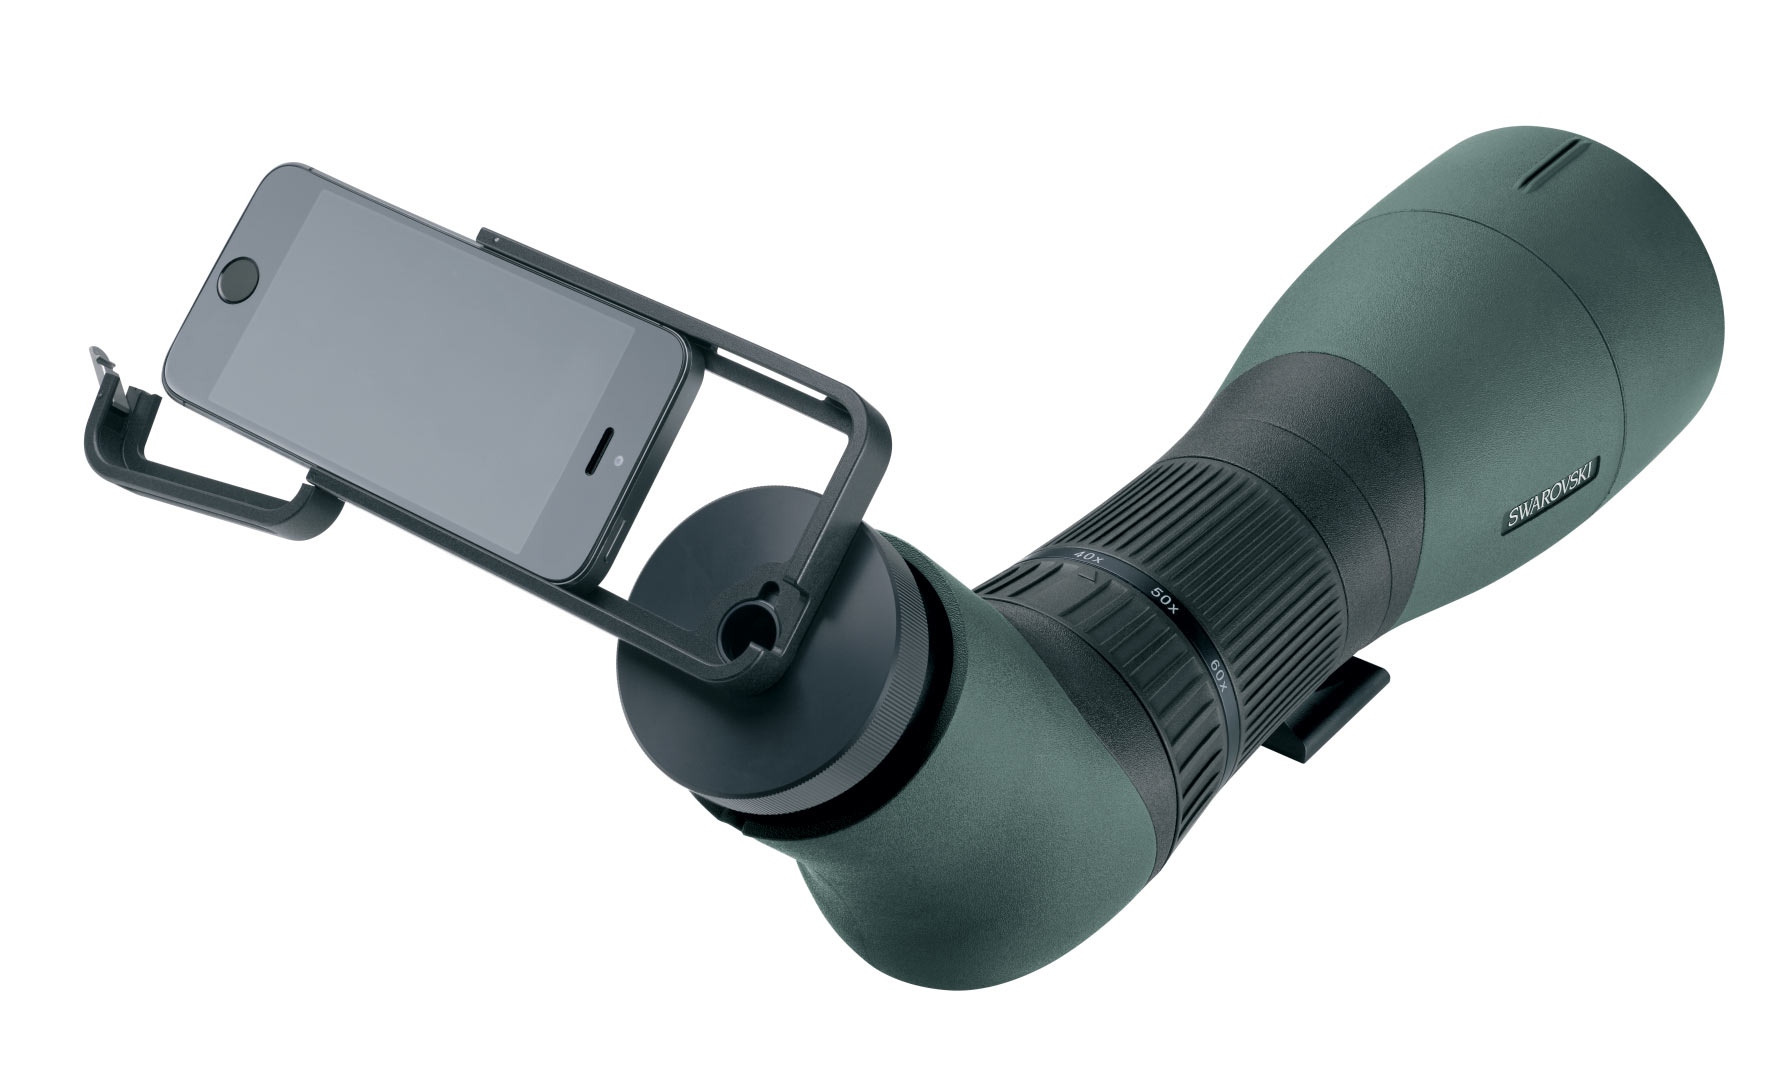 The Swarovski PA-i5 adapter also lets you attach an iPhone 5 or 5s to a Swarovski spotting scope.